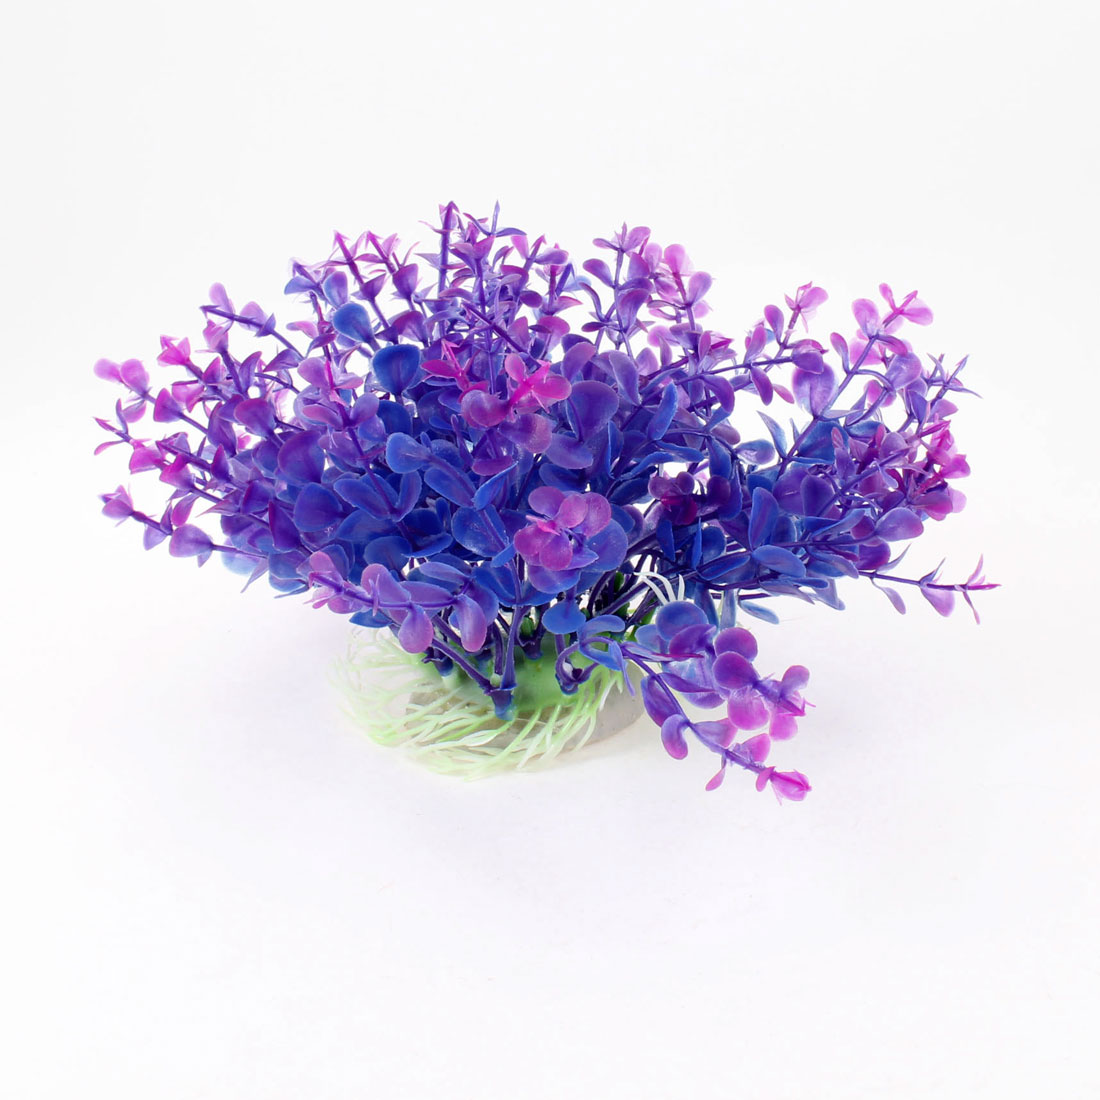 "Indigo Blue Purple Manmade Water Plant Decoration 6.7"" Heigth for Fish Tank"